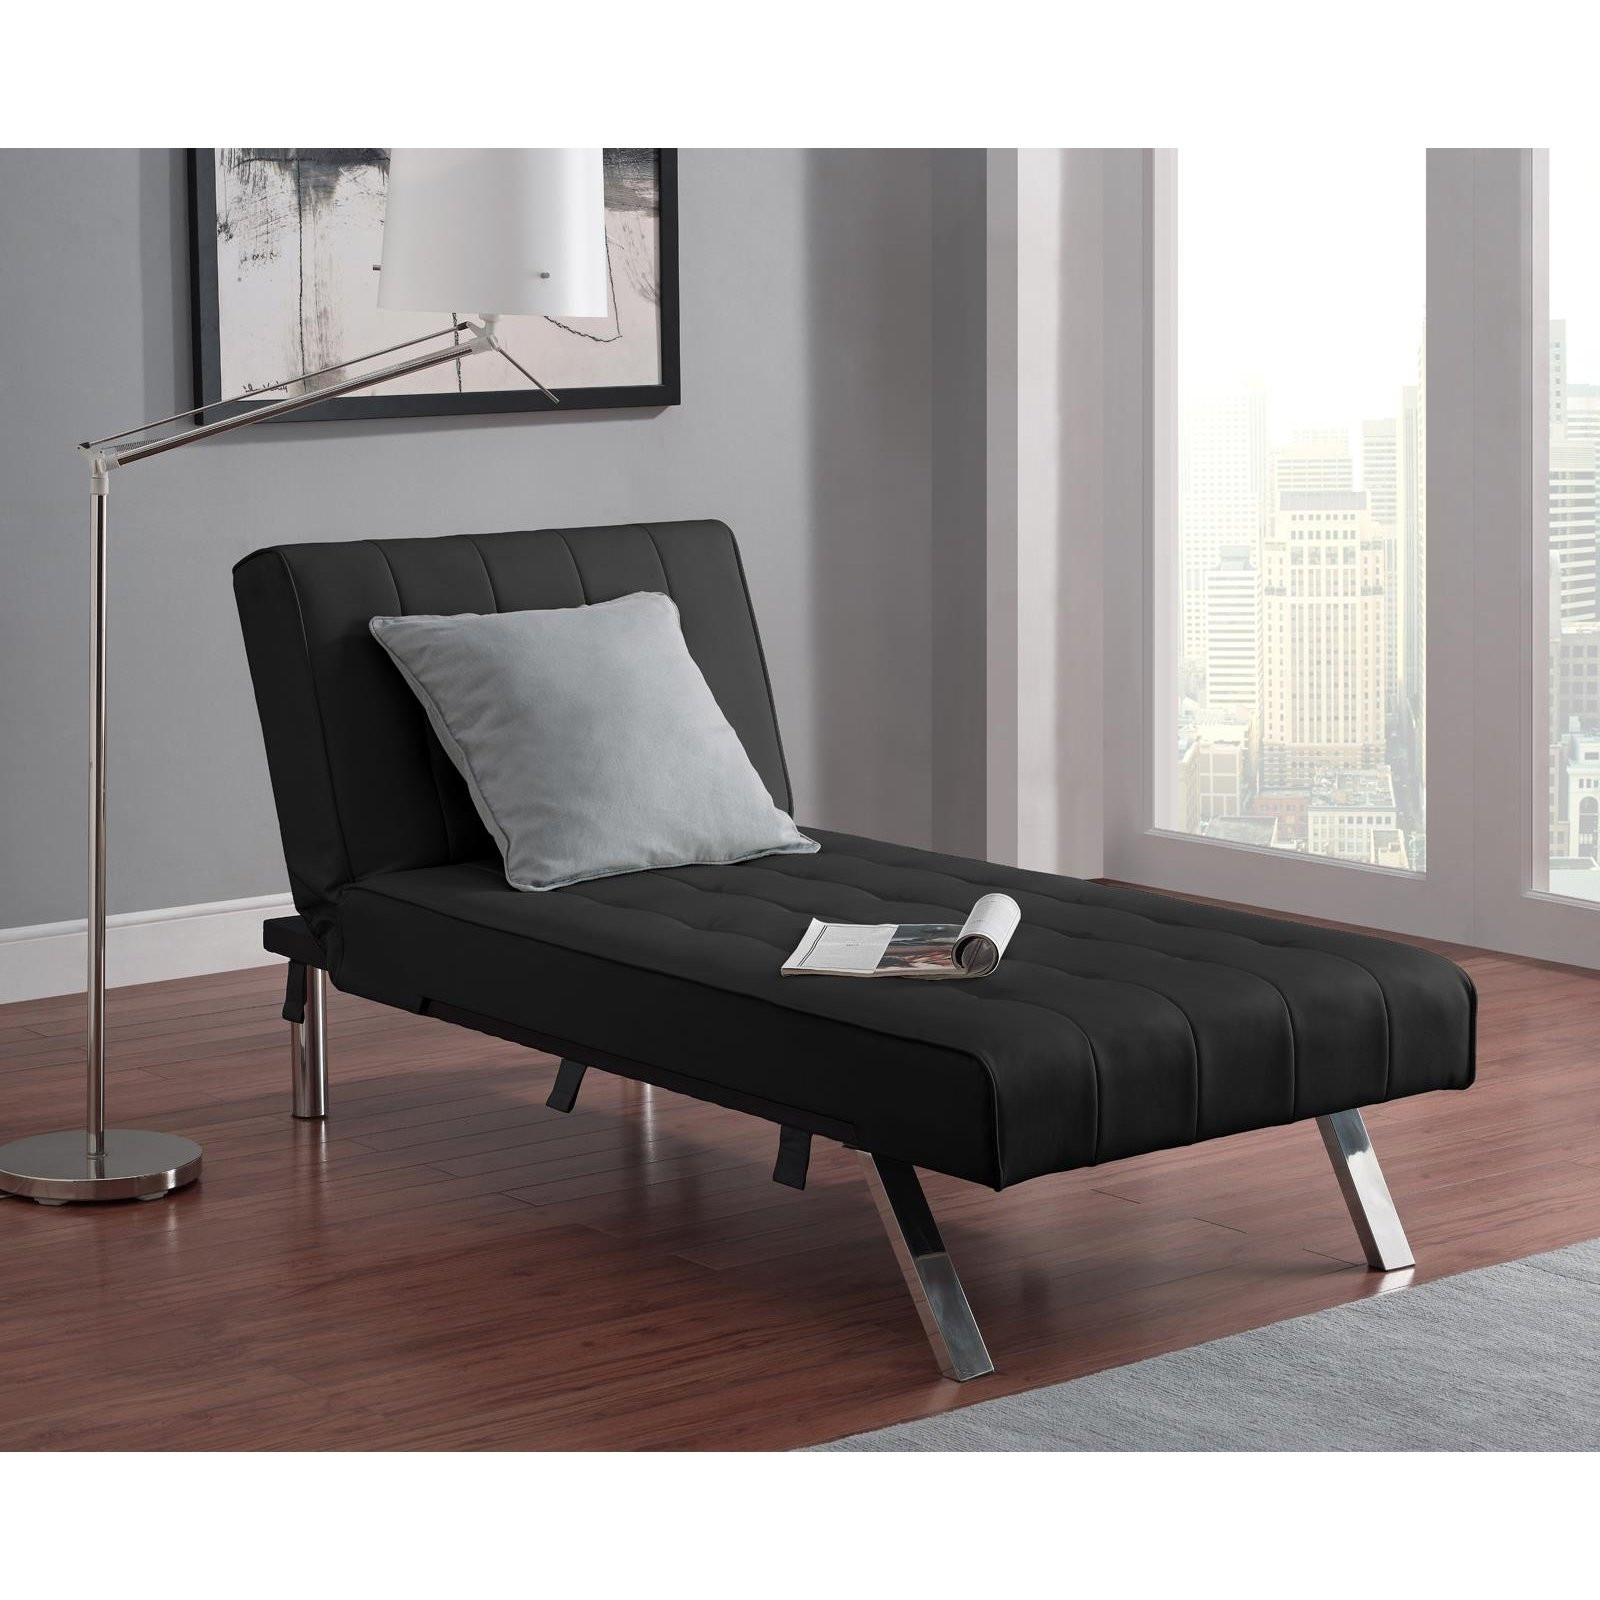 Current Furniture : Wonderful Indoor Chaise Lounge Under $100 Awesome Dhp Within Indoor Chaise Lounges (View 5 of 15)